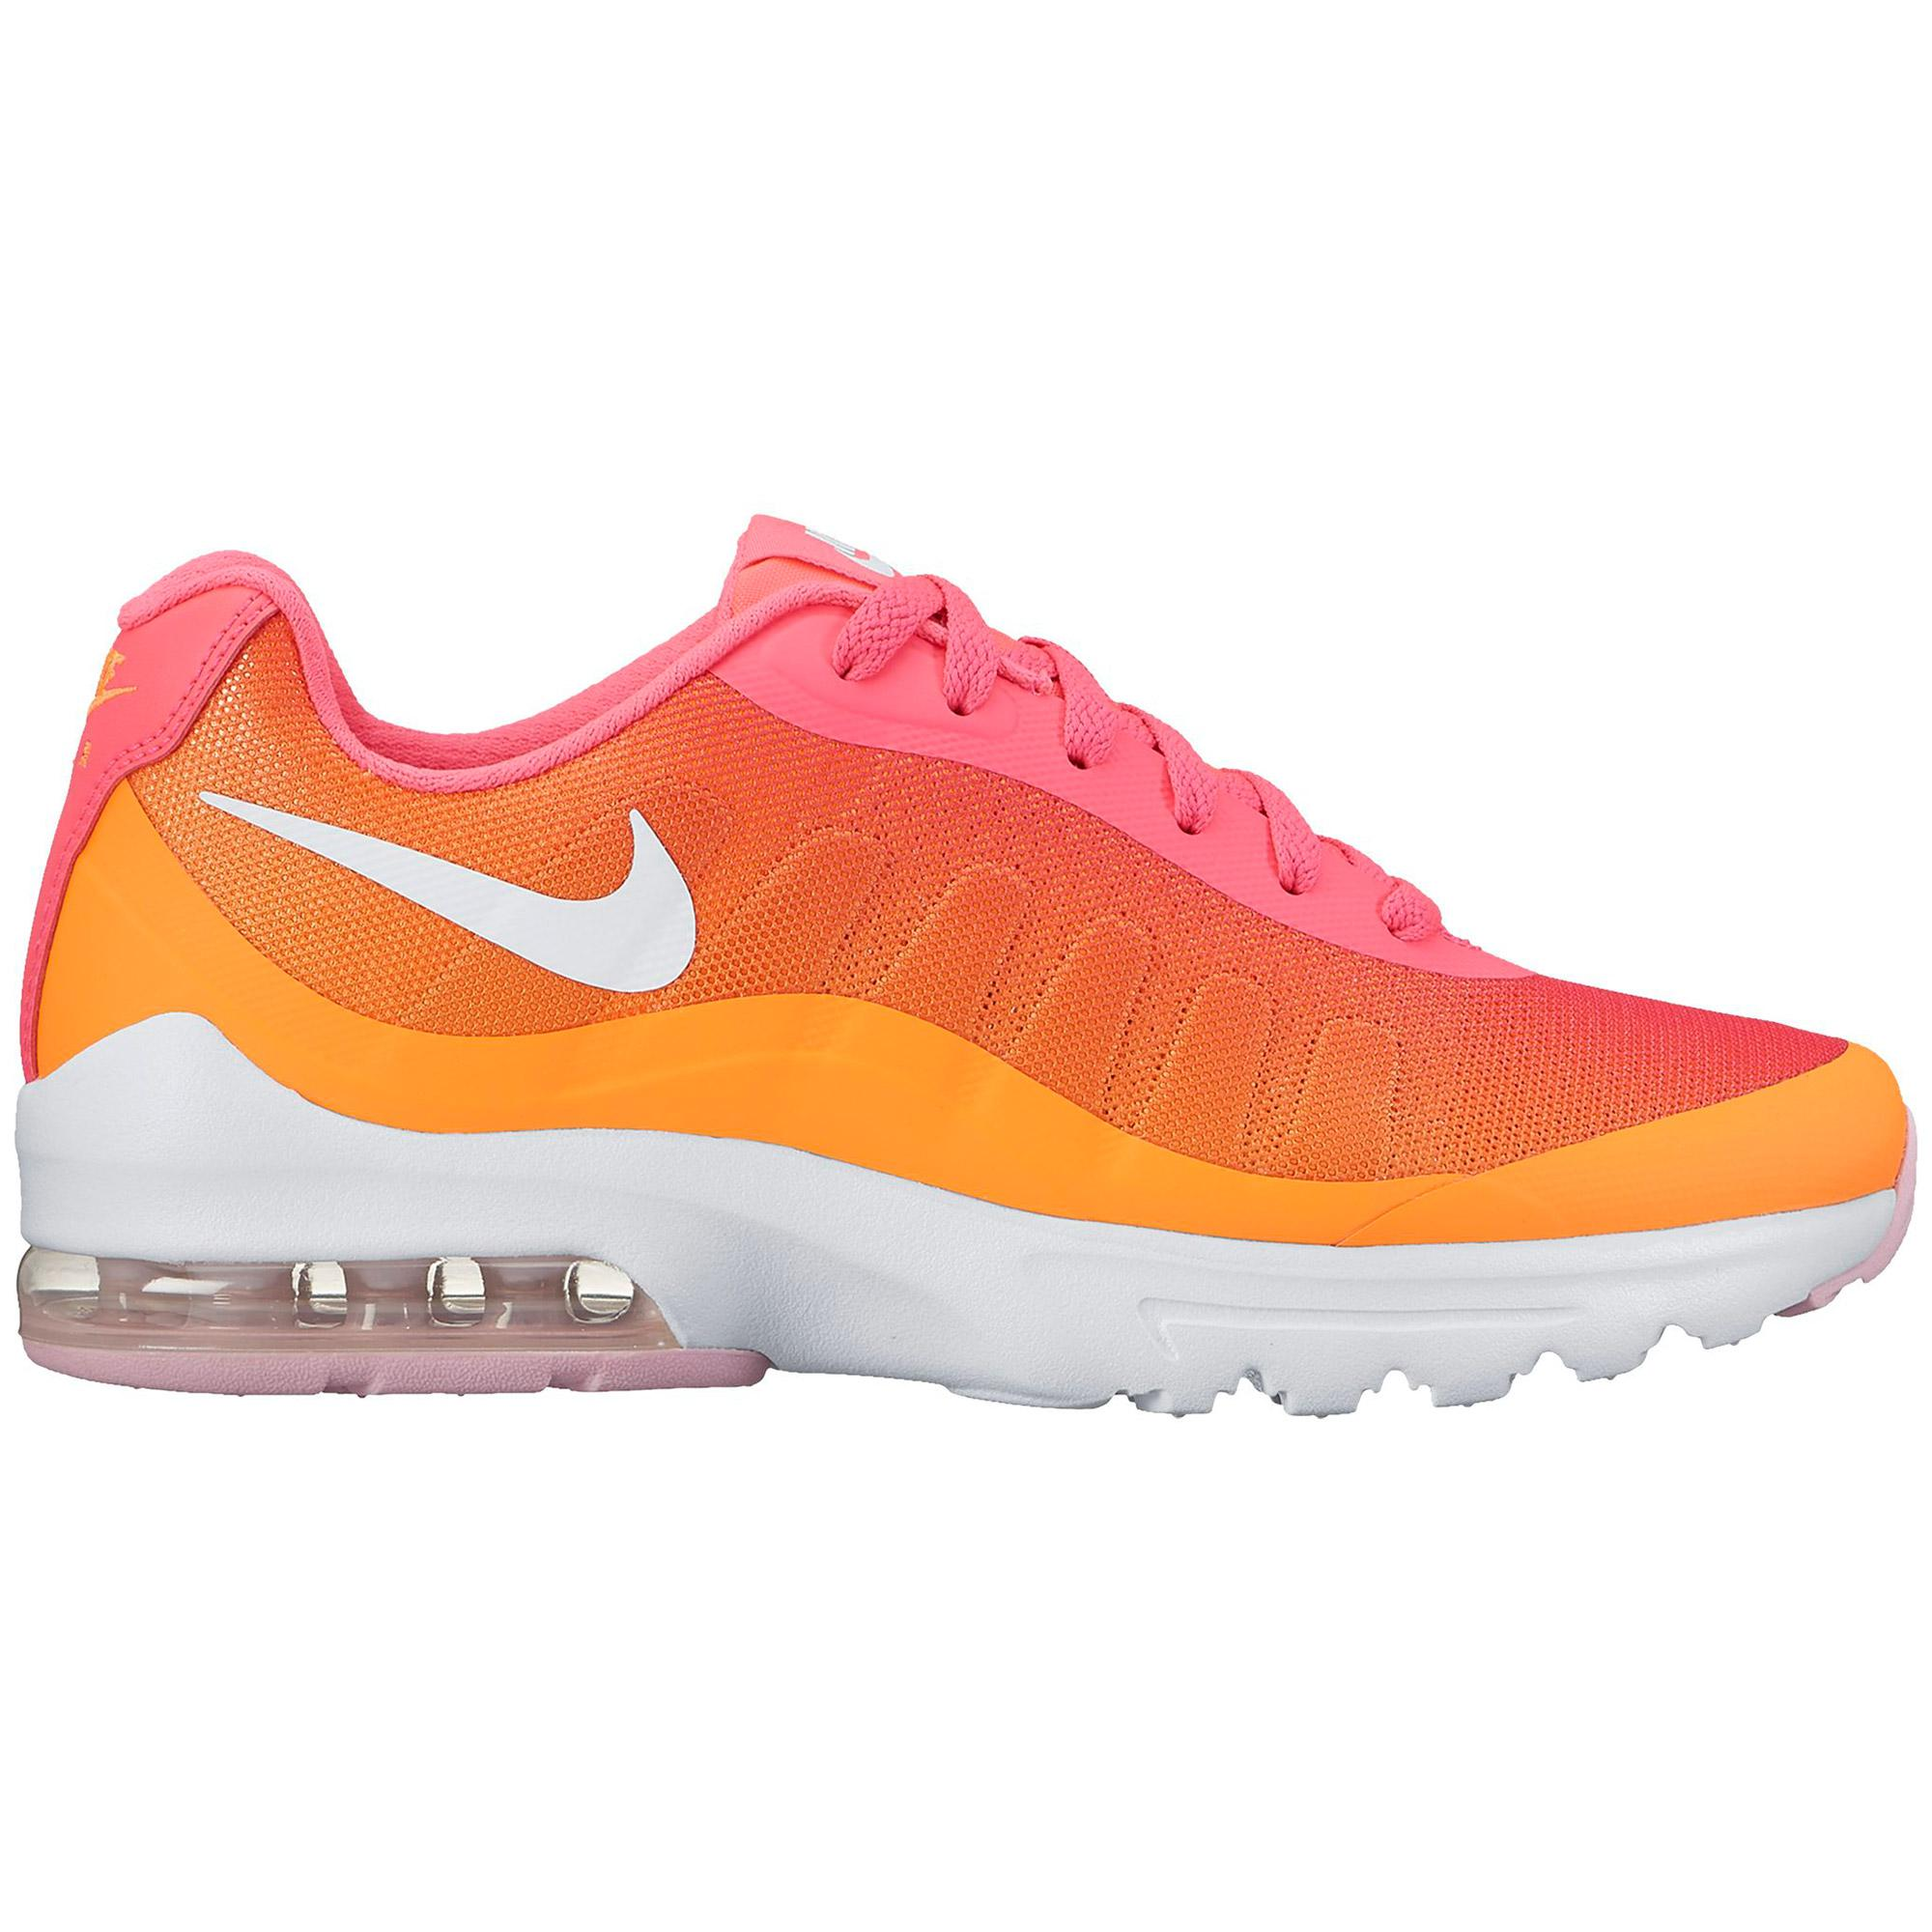 Nike Womens Air Max Invigor Running Shoes Racer Pink